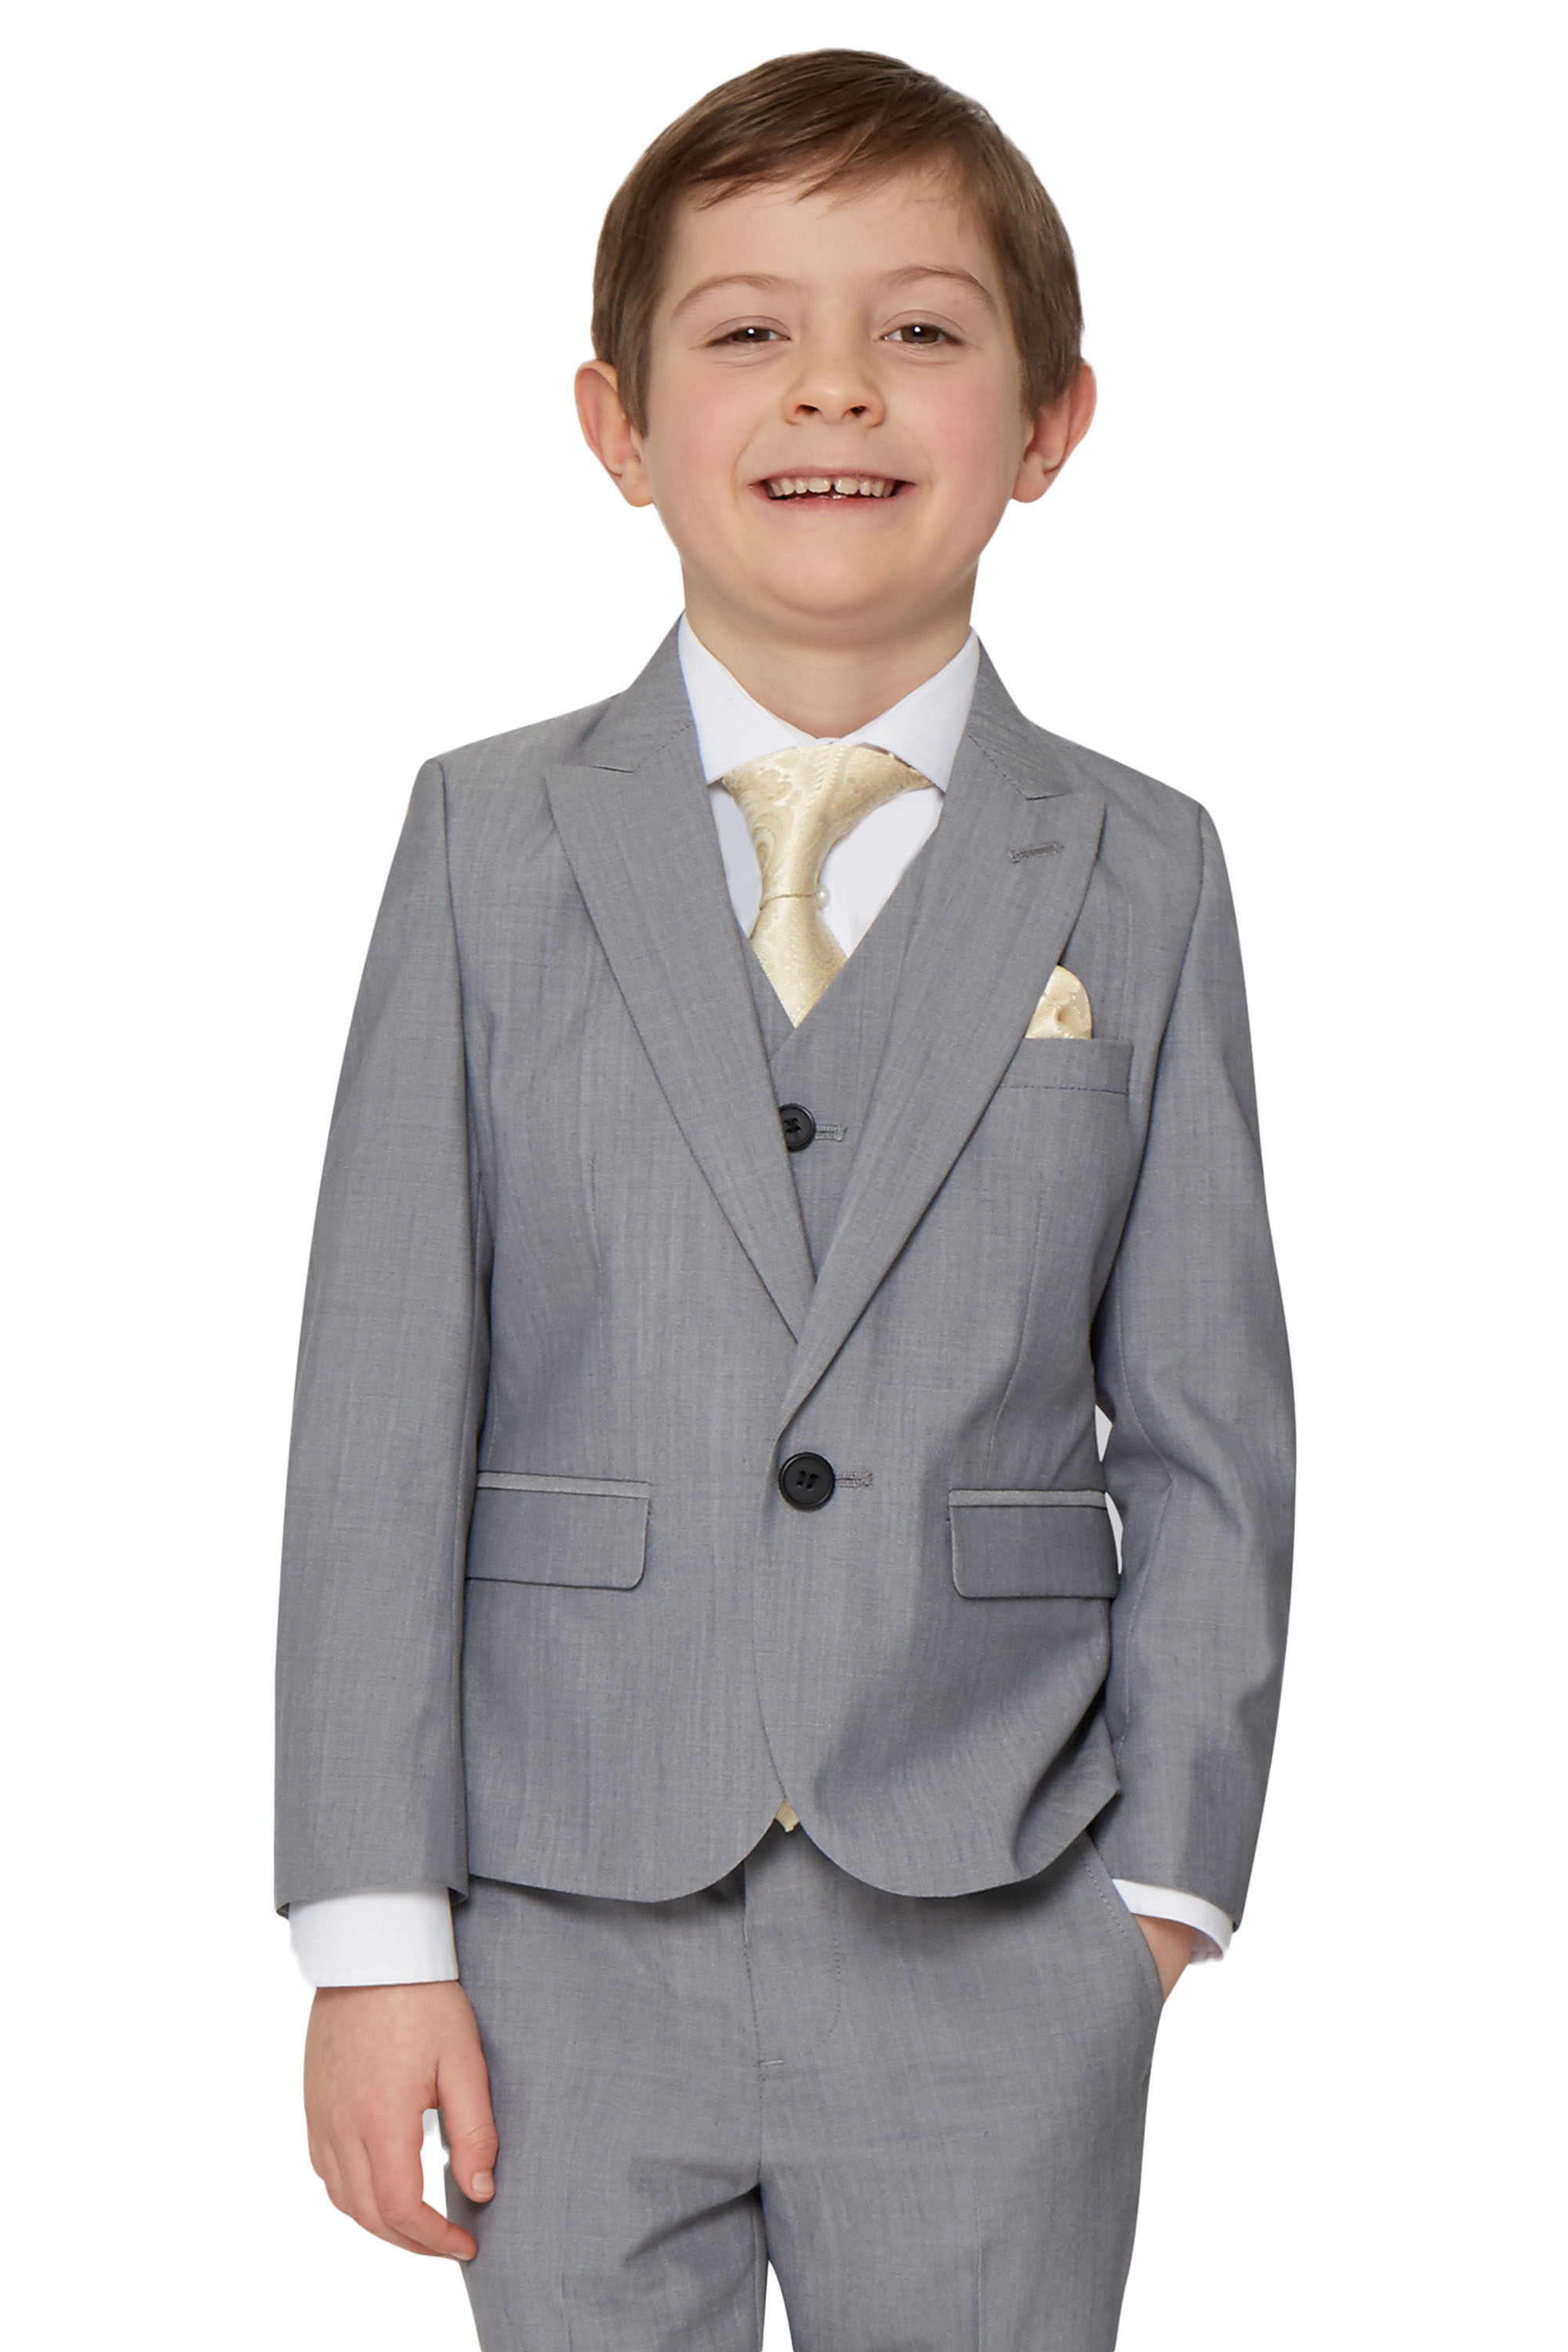 French Connection Boys Formal Silver Grey Suit Jacket One Button Kids Blazer | EBay